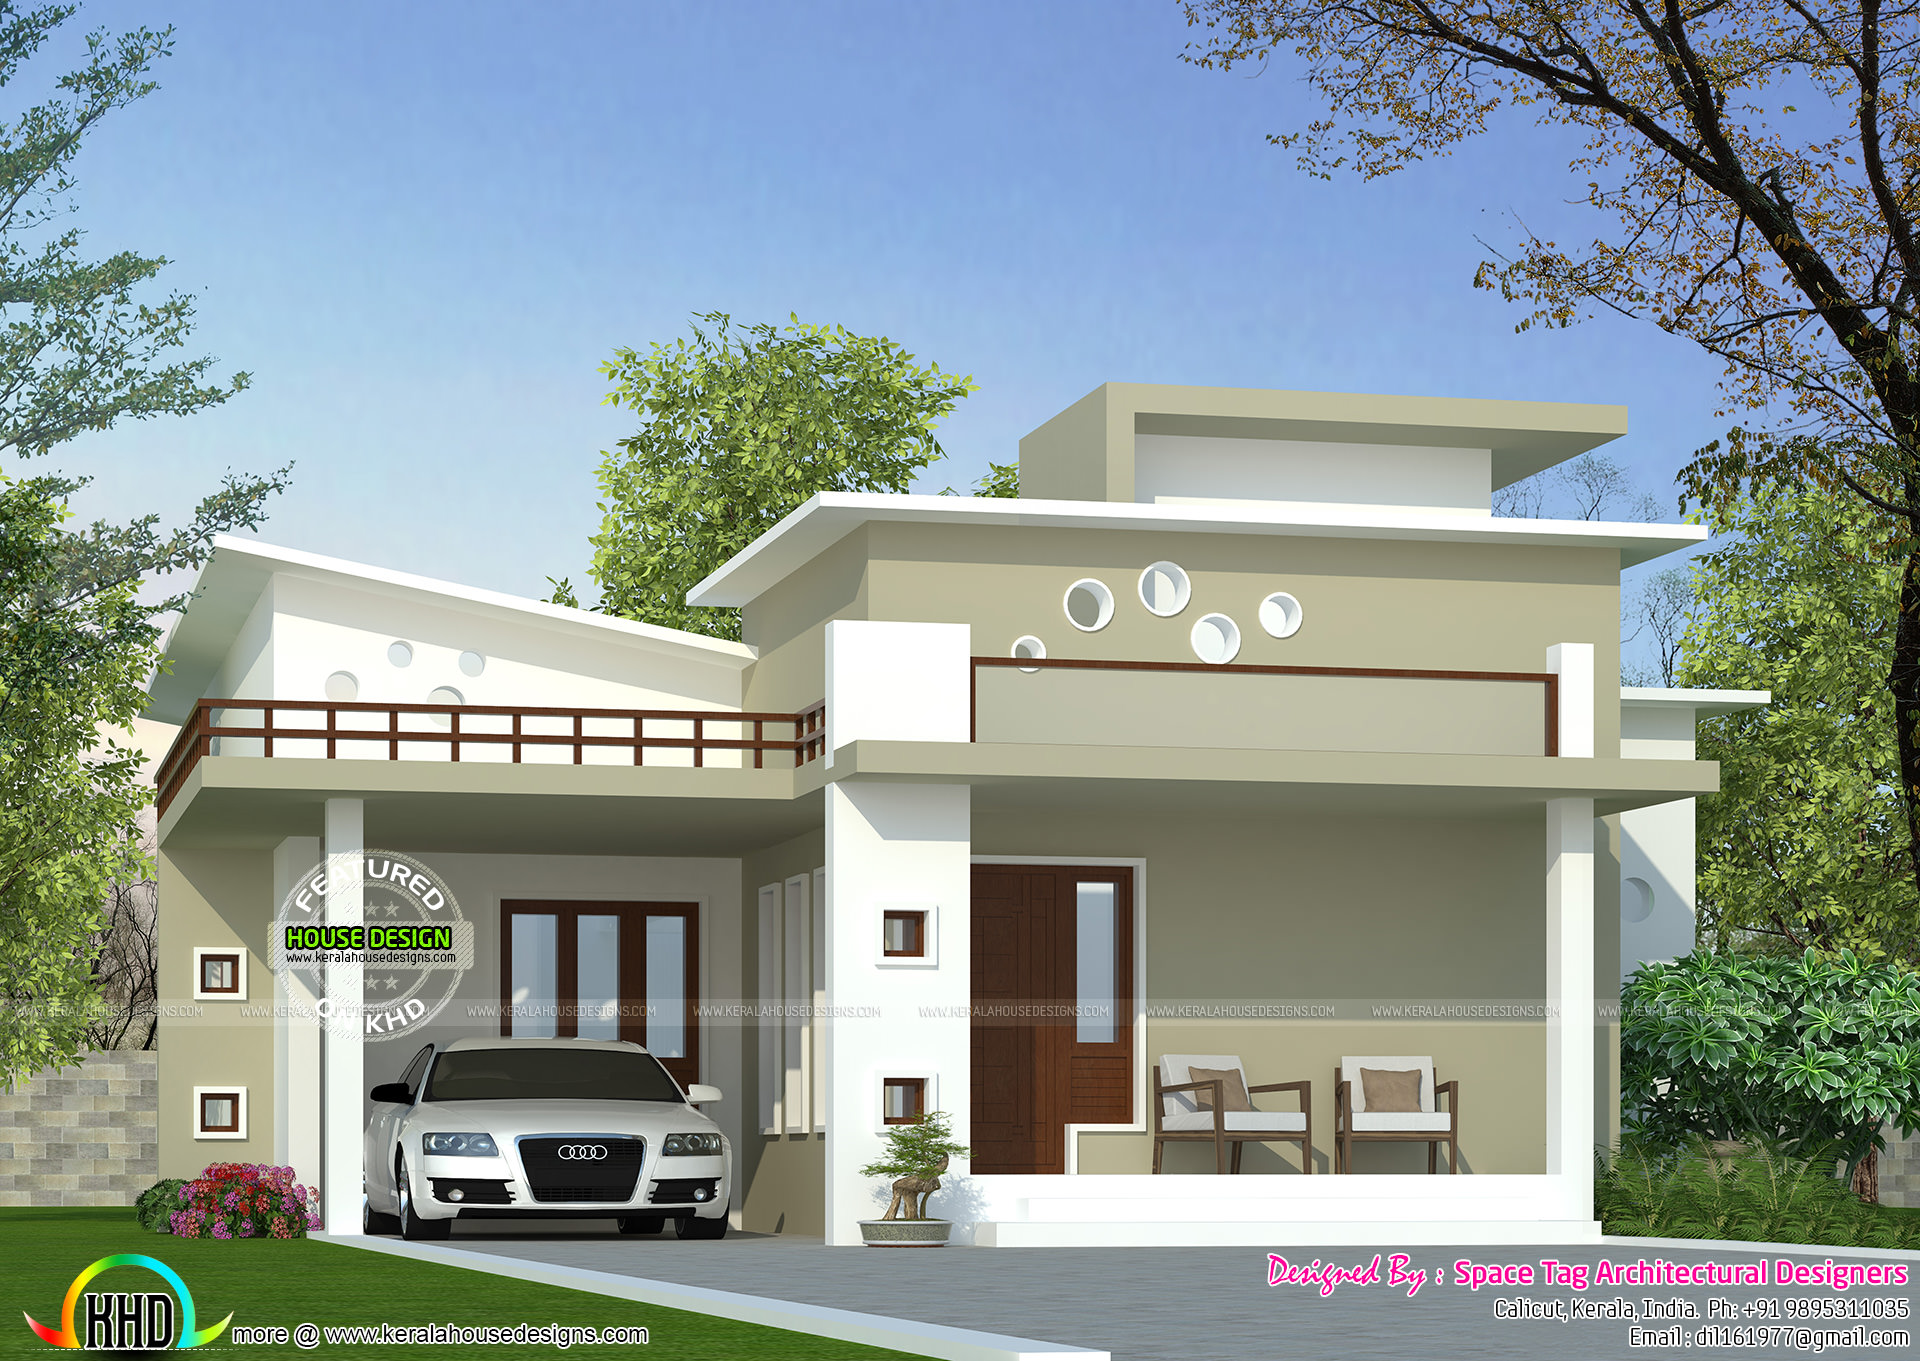 Low cost kerala home design kerala home design and floor - Oggetti design low cost ...